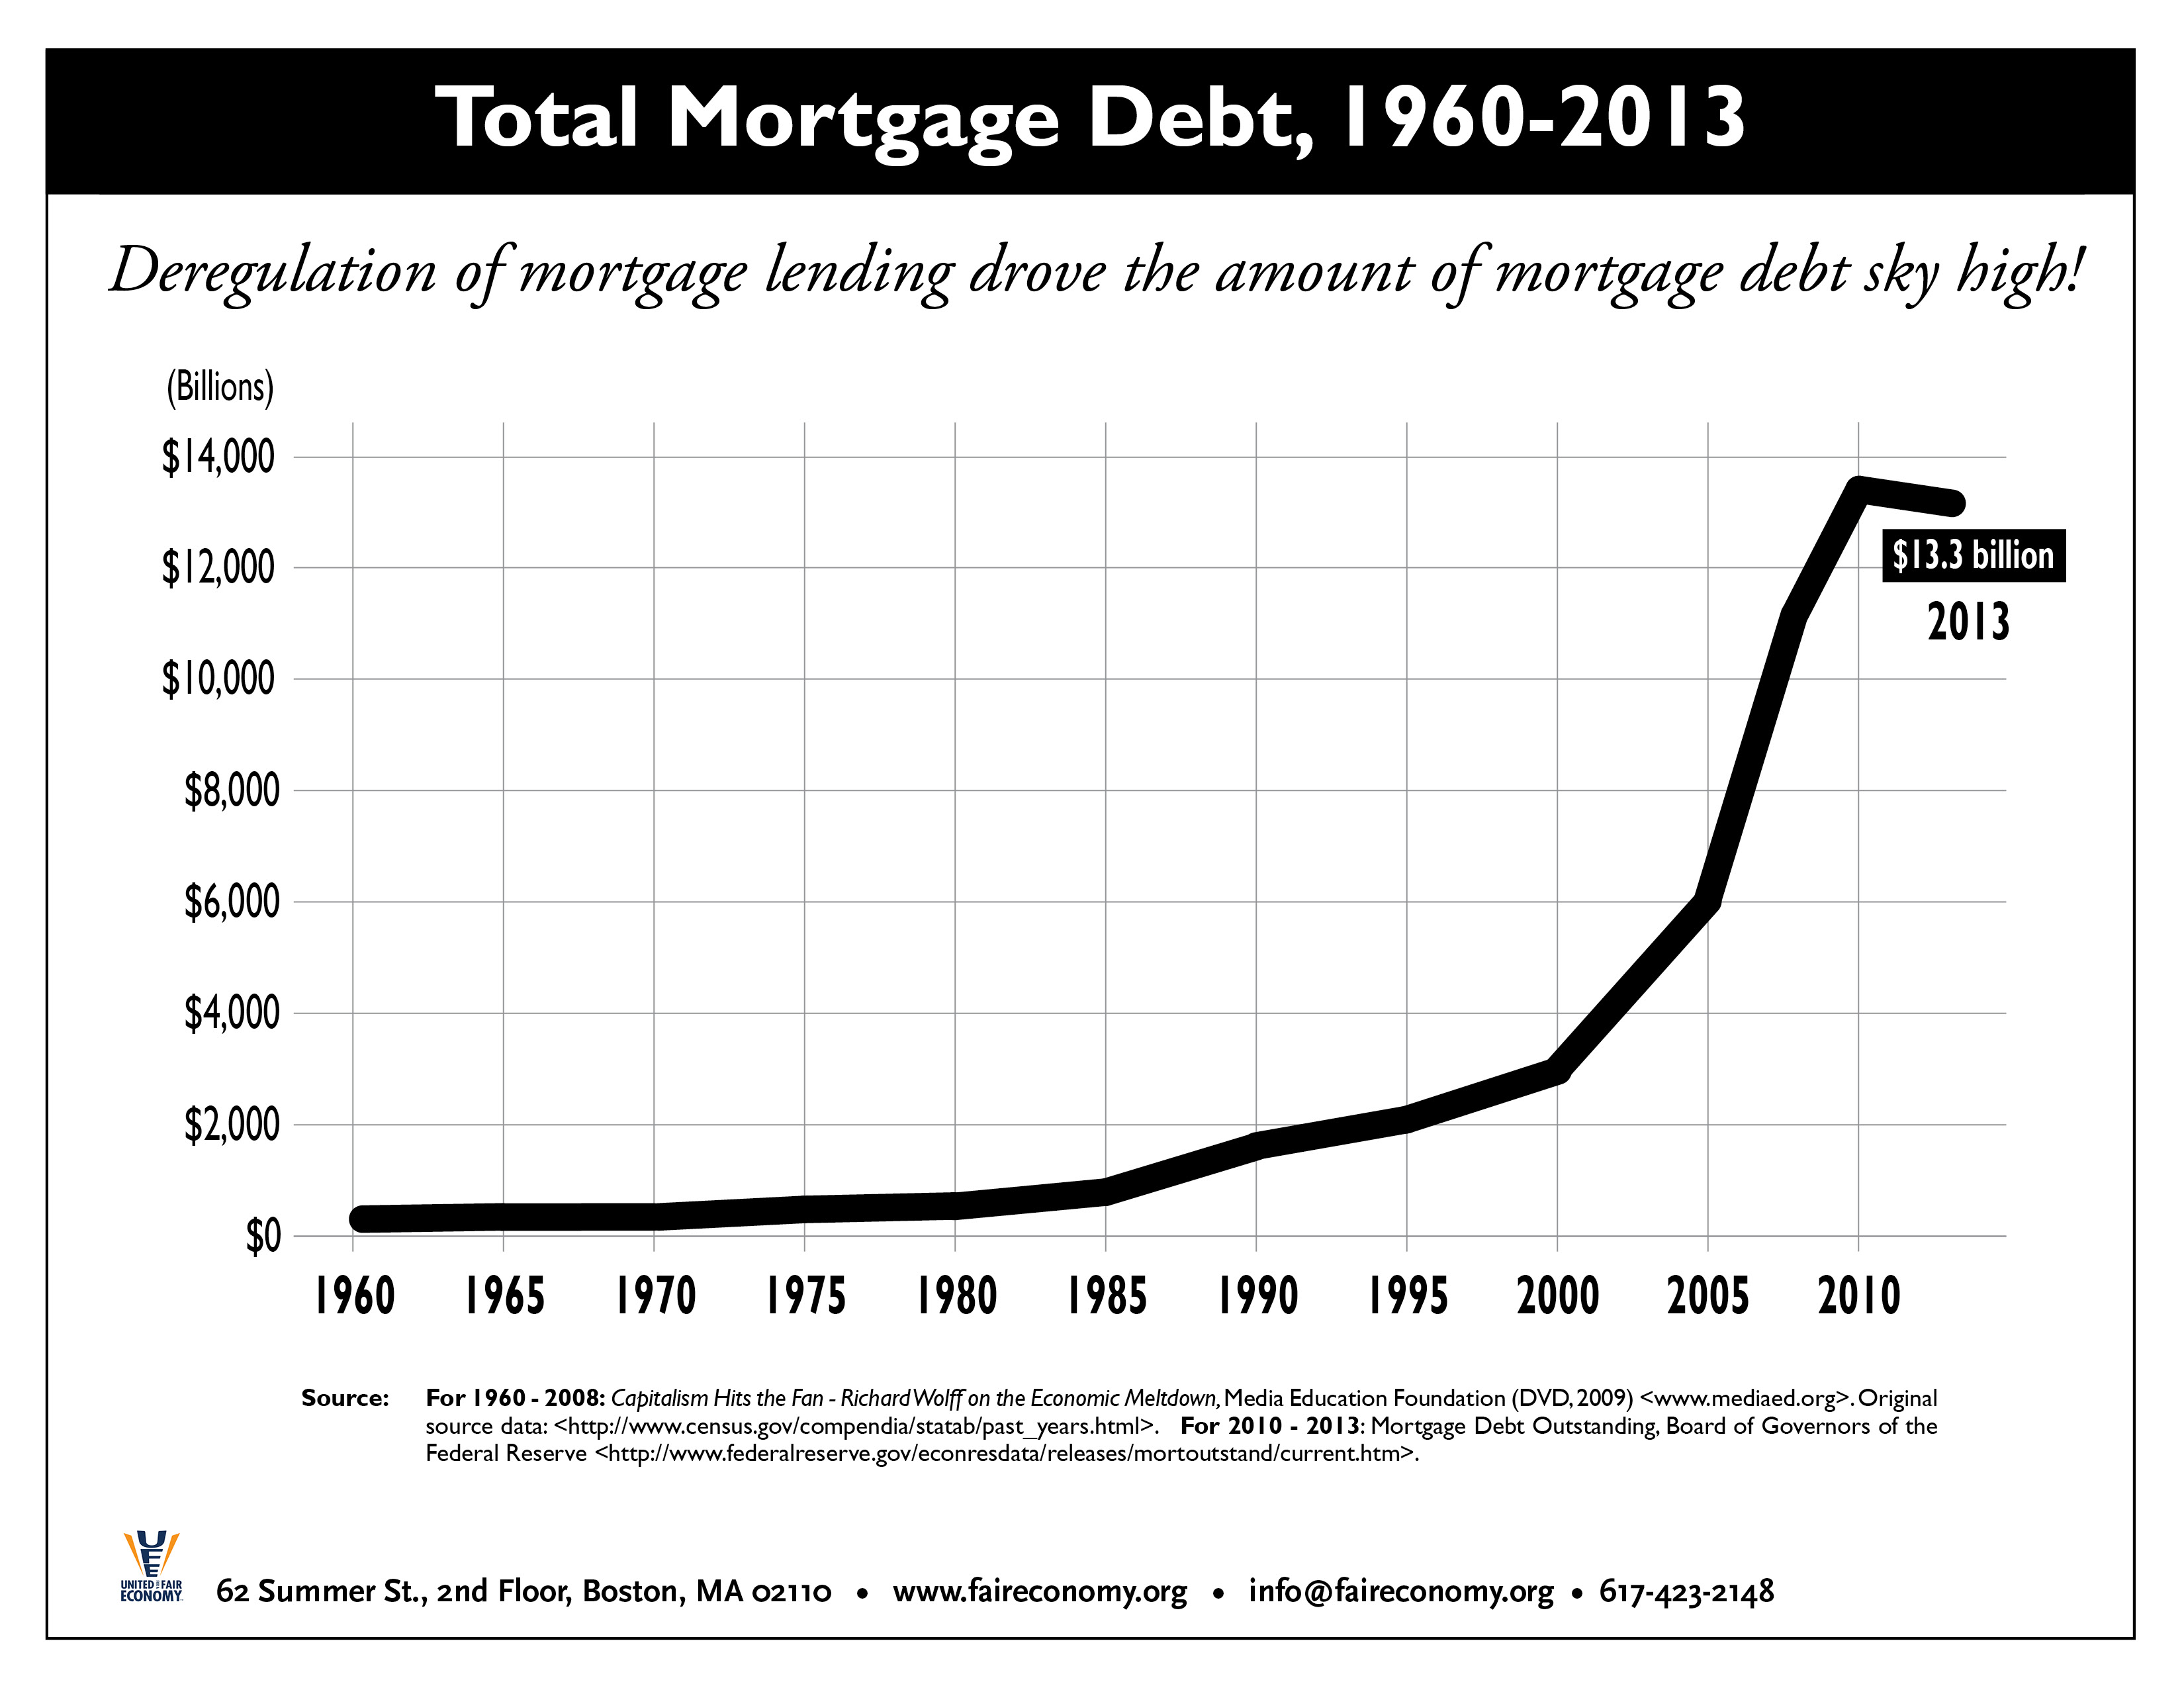 Total_Mortgage_Debt_1960-2013.jpg